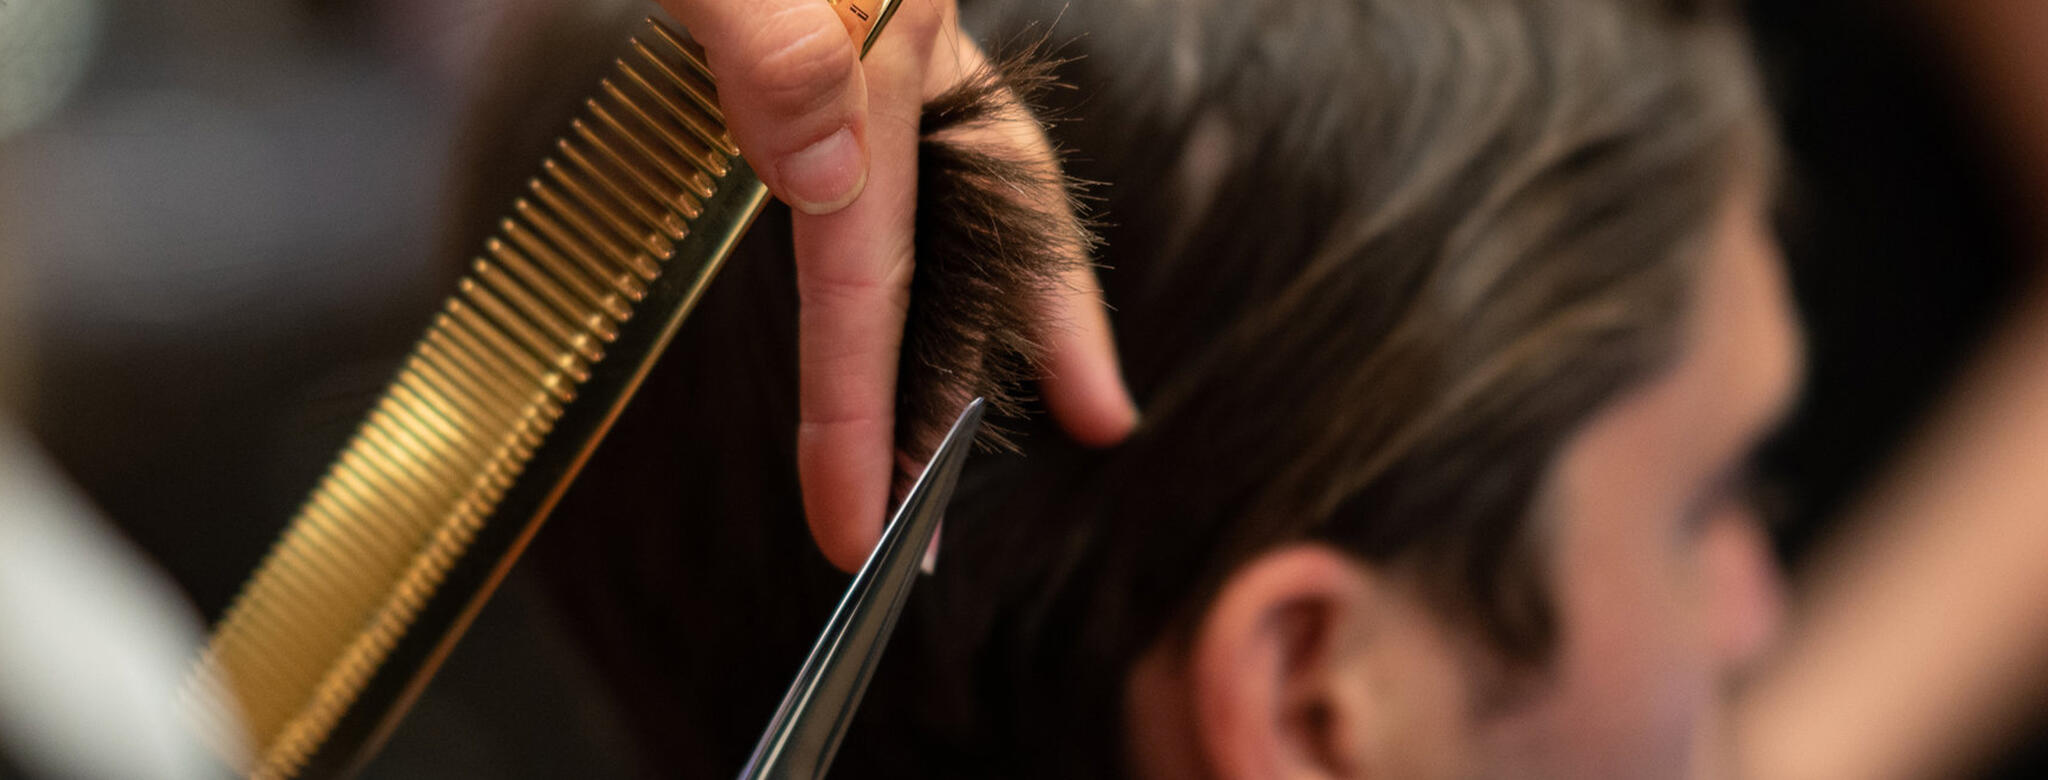 Stylist cutting hair at Emerson Joseph